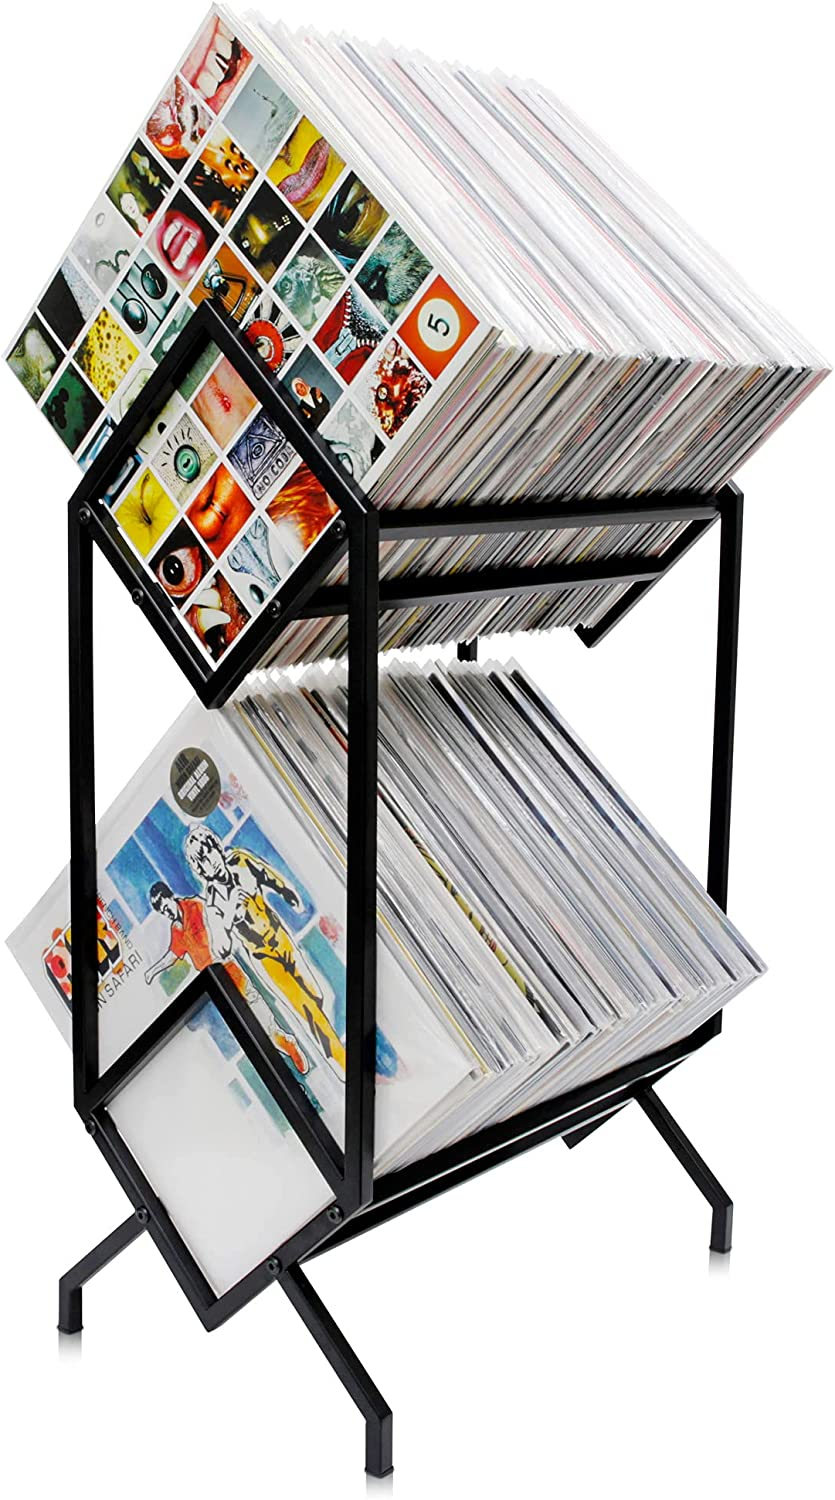 KRONNDORF Vinyl Record Storage Rack, Black - Holds 200 Vinyls, Modern 2 Tier Small Book Shelf Organizer for Small Spaces, Sturdy Records Holder for LP Albums, Narrow Metal Freestanding Display Stand